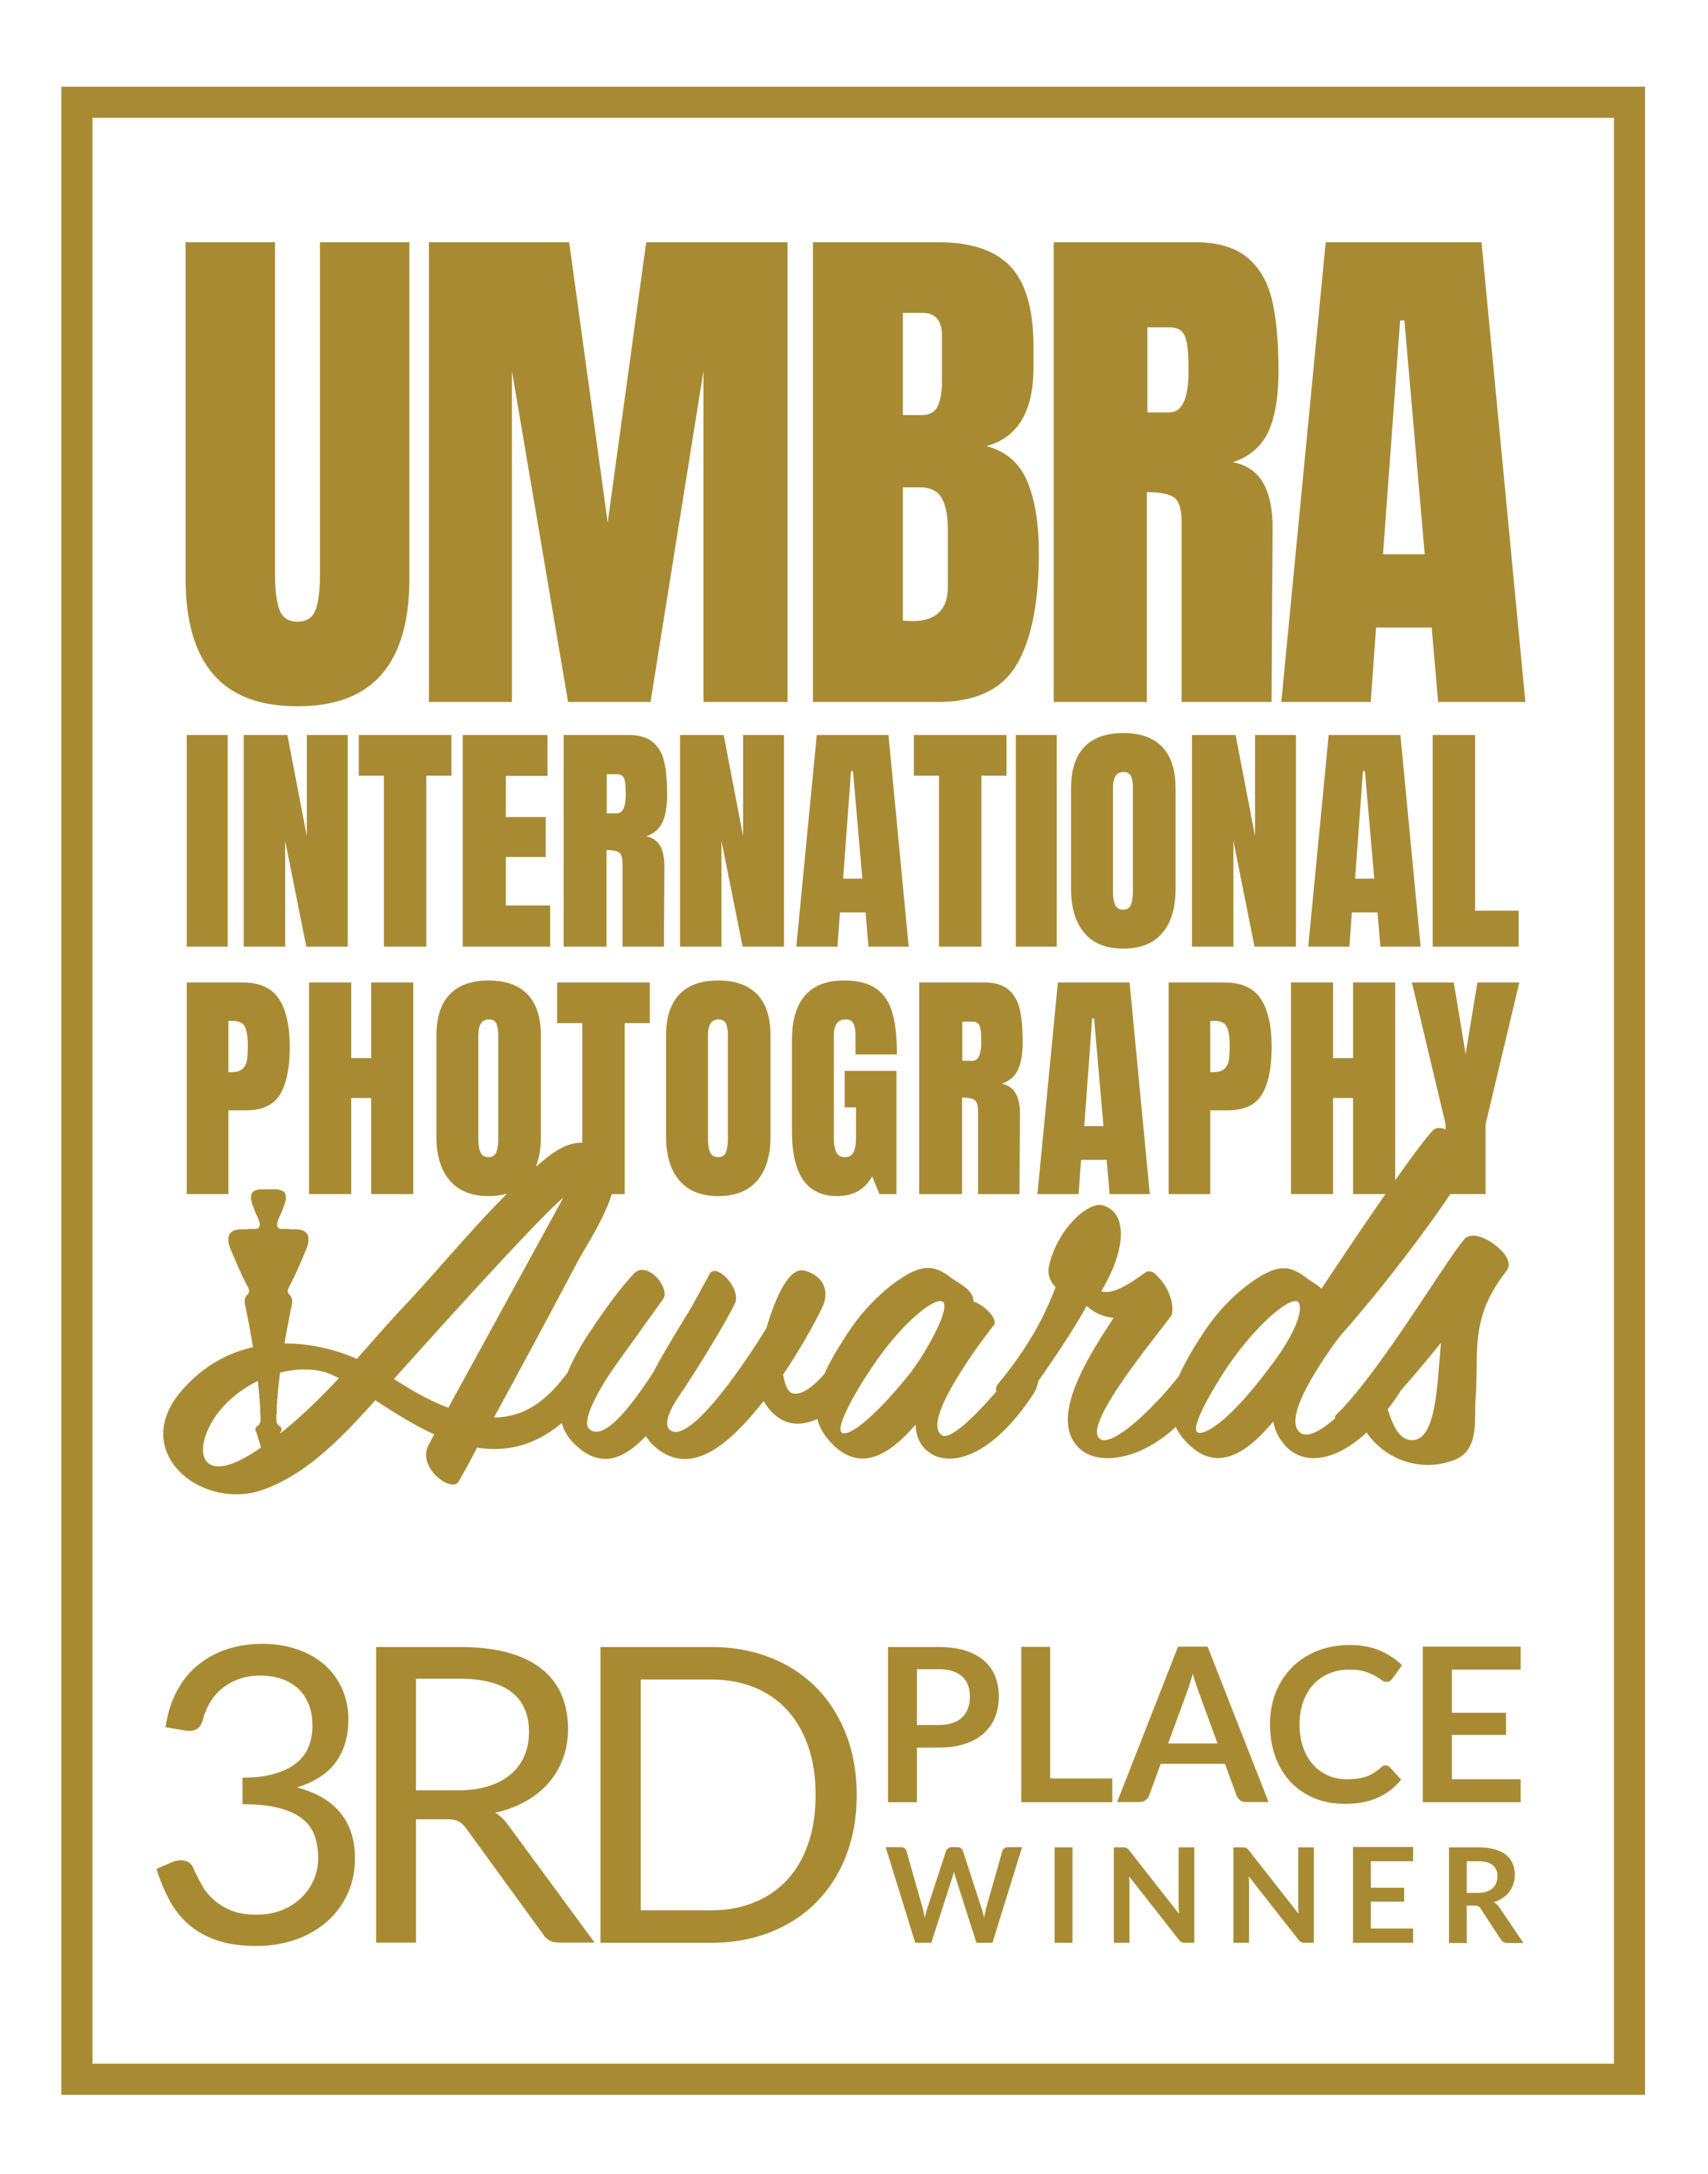 03 UMBRA AWARD SEAL_3RD PLACE WINNER_PNG.png